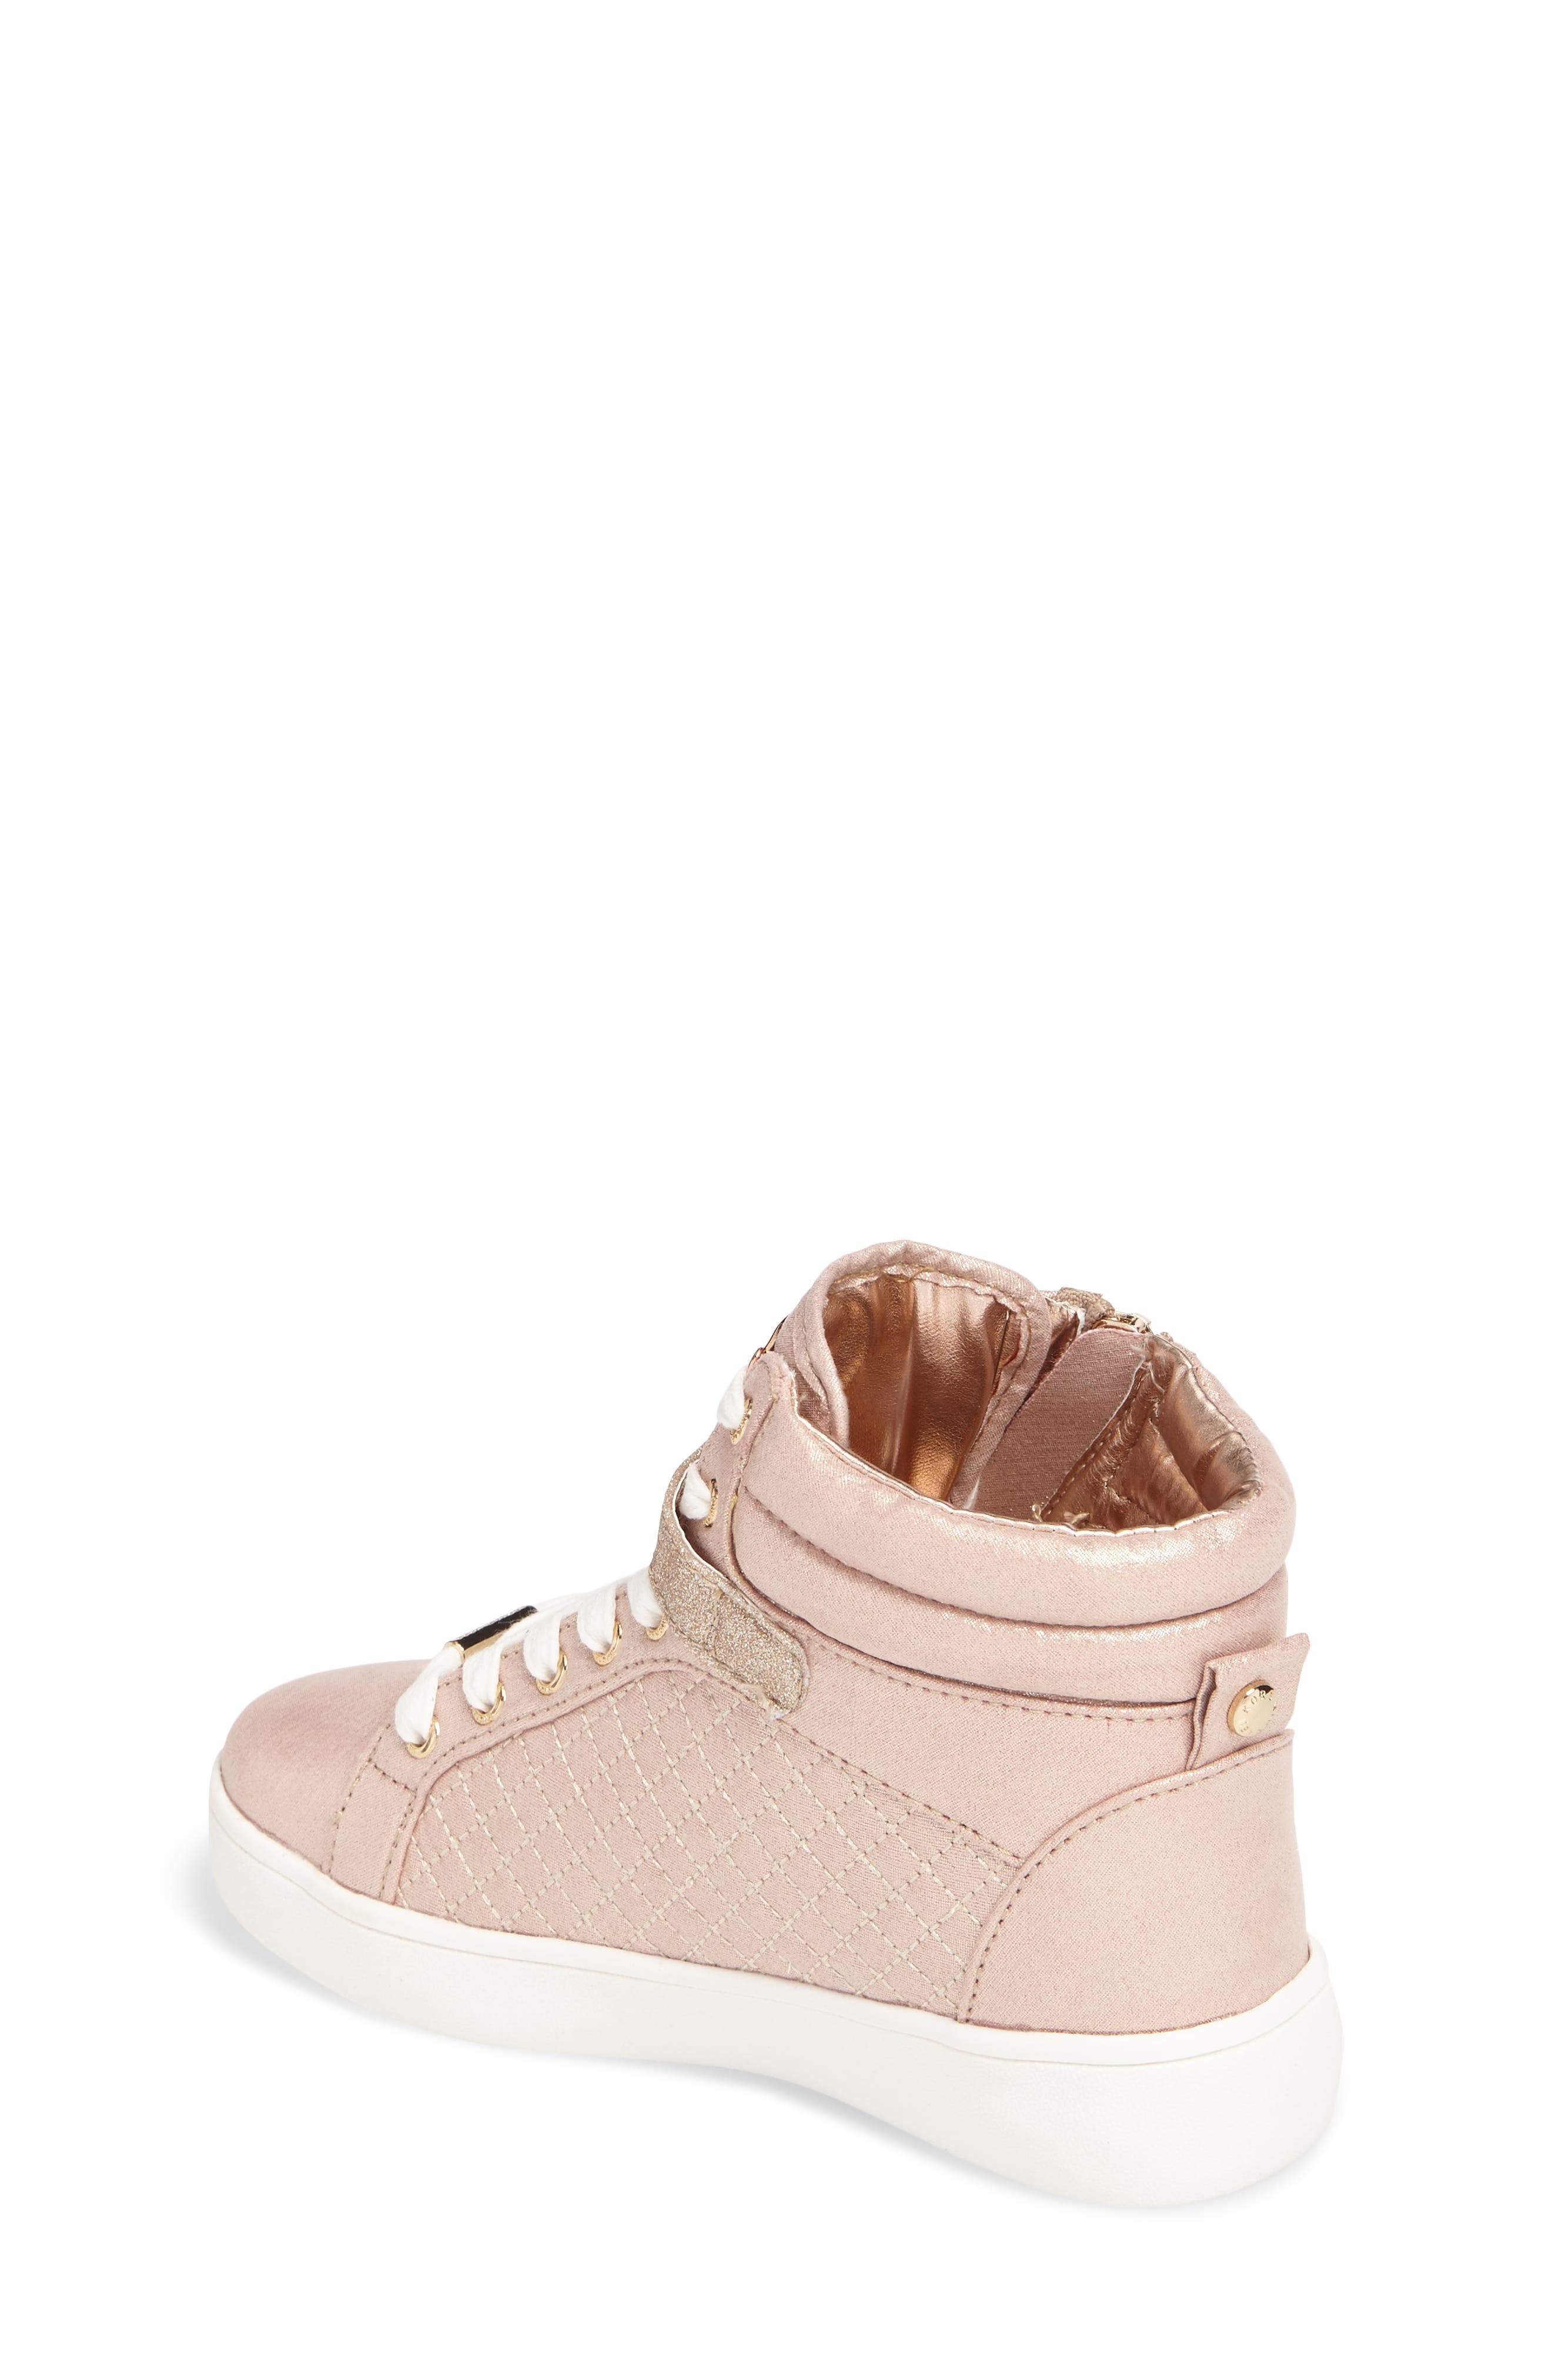 Ivy Rio Glittery High Top Sneaker,                             Alternate thumbnail 2, color,                             Rose Gold